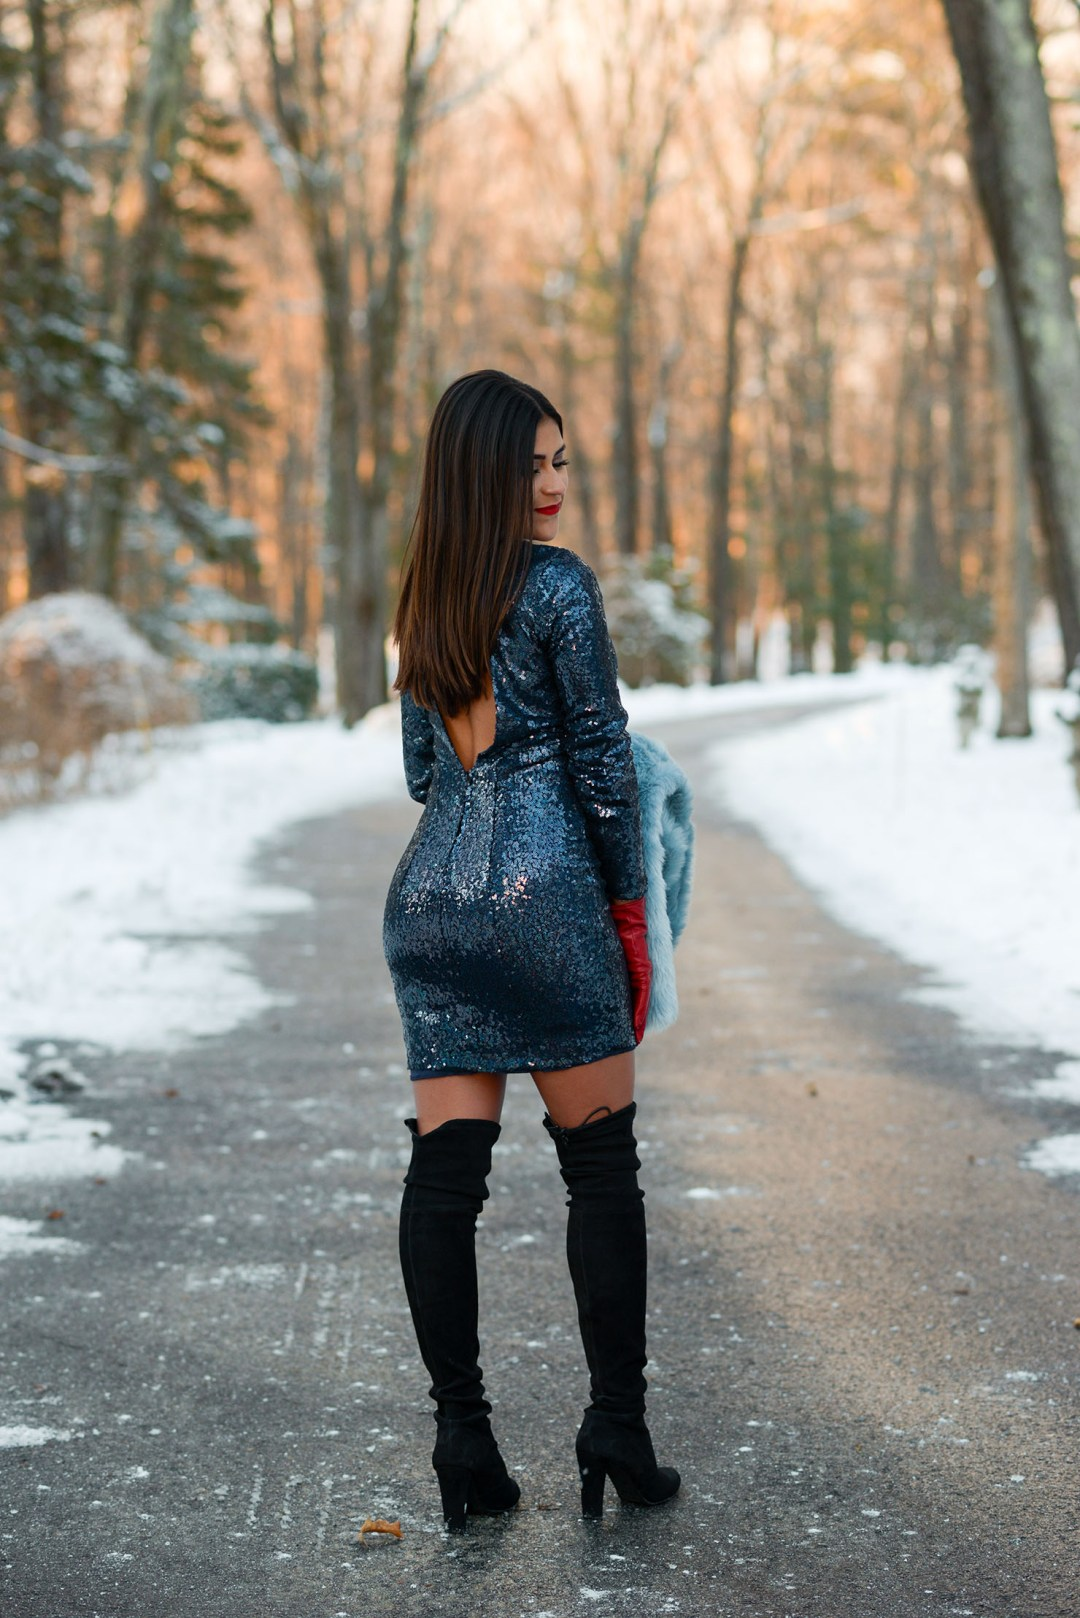 Lifestyle blogger Kelsey Kaplan Fashion wearing blue sequin dress for New Year's Eve 2017 and Stuart Weitzman over the knee boots